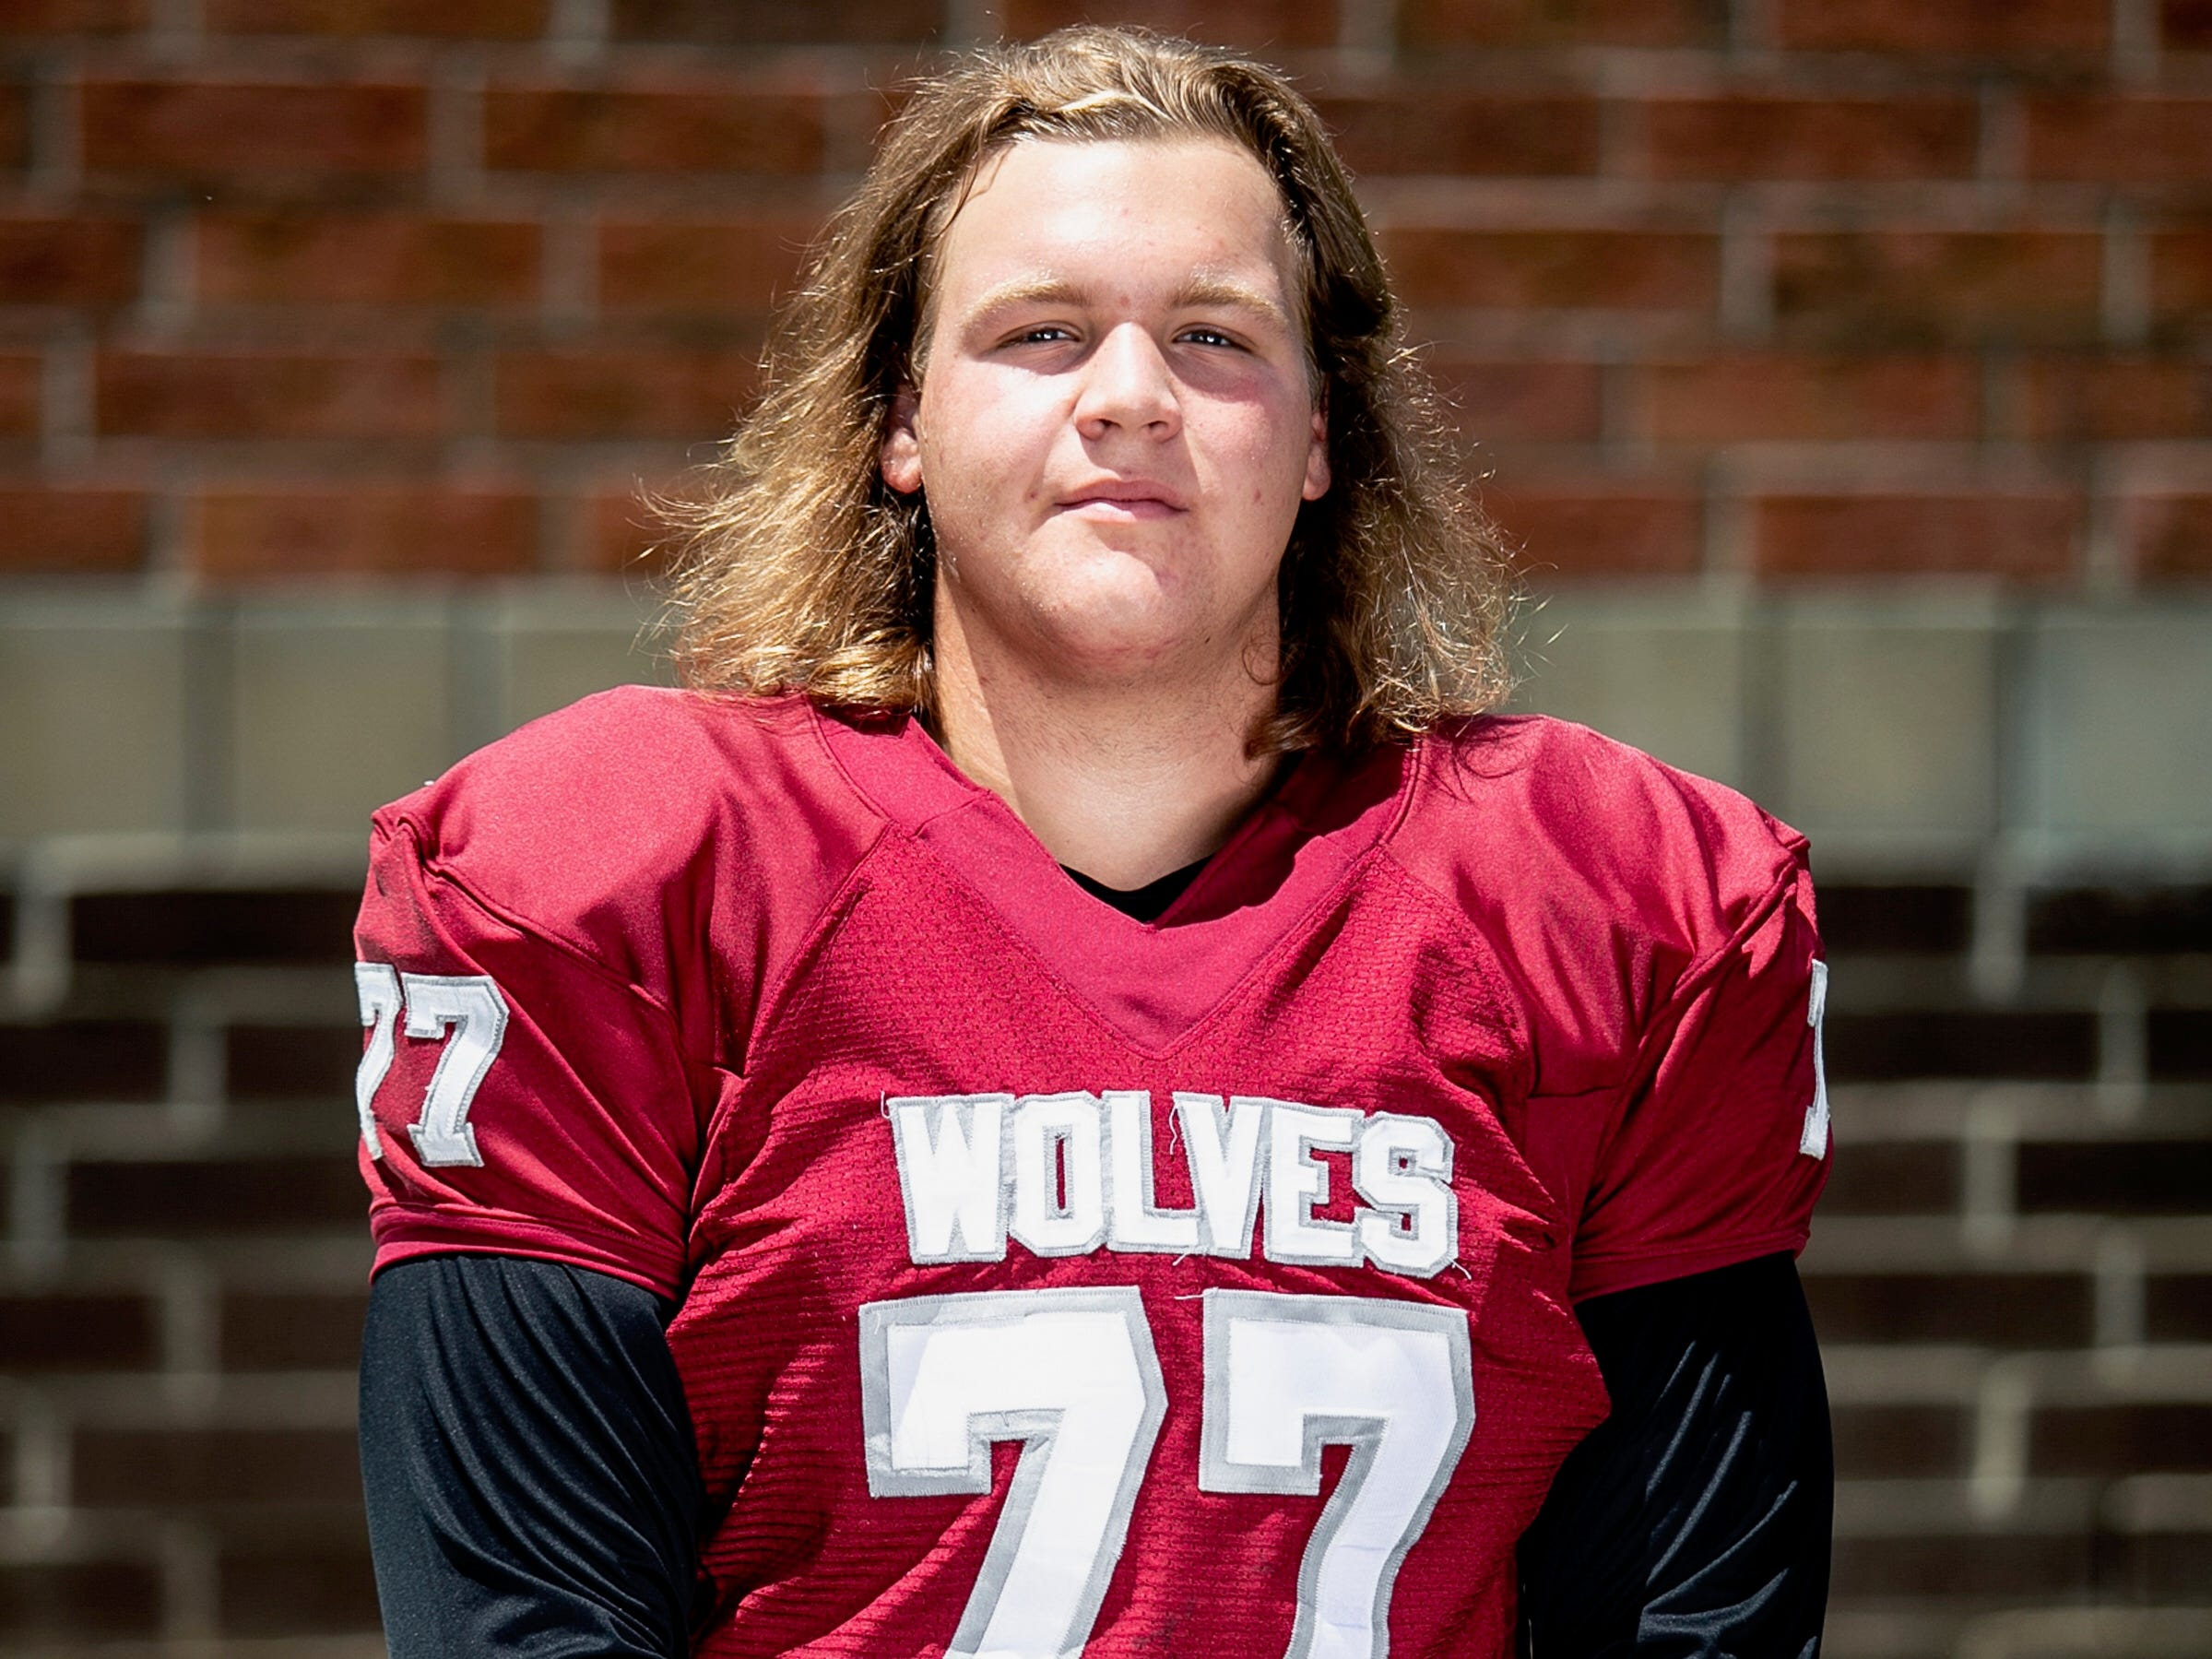 Chiles senior offensive lineman Sam Neely was named to the 2018 All-Big Bend football first team for offense. STATS: 94%, 34 pancakes